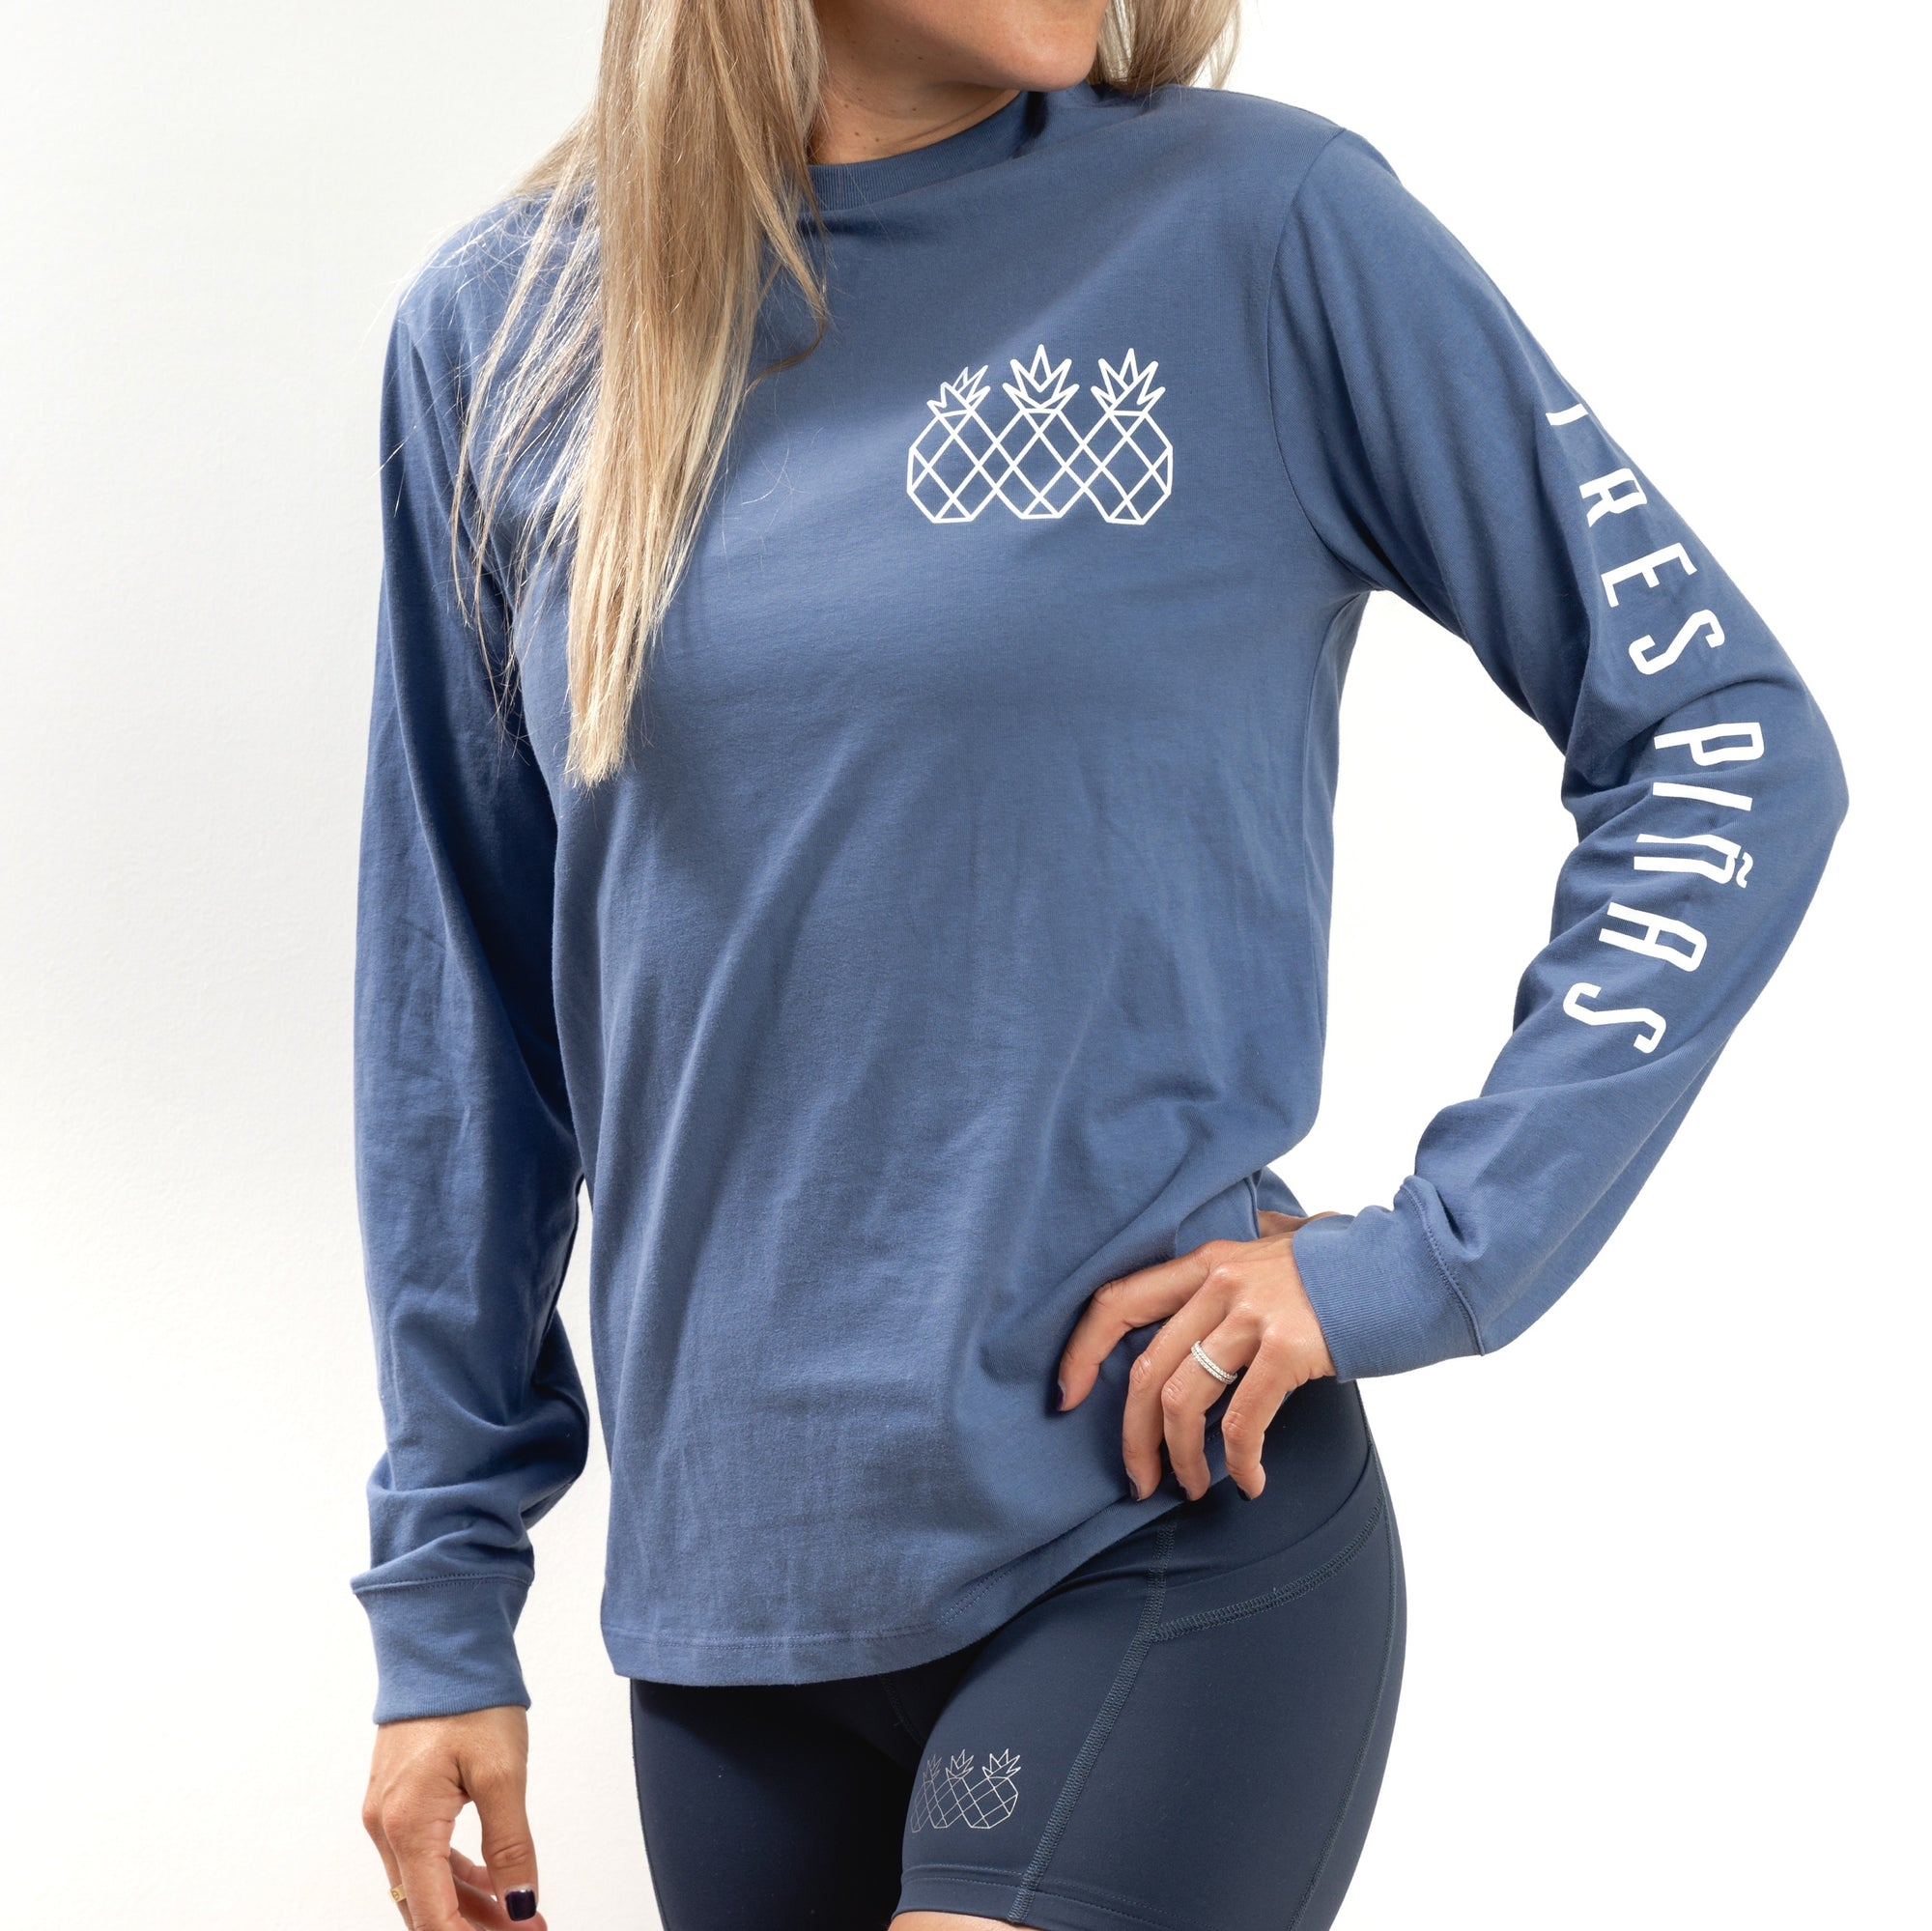 Transition Long Sleeve Tee UNISEX - Blue